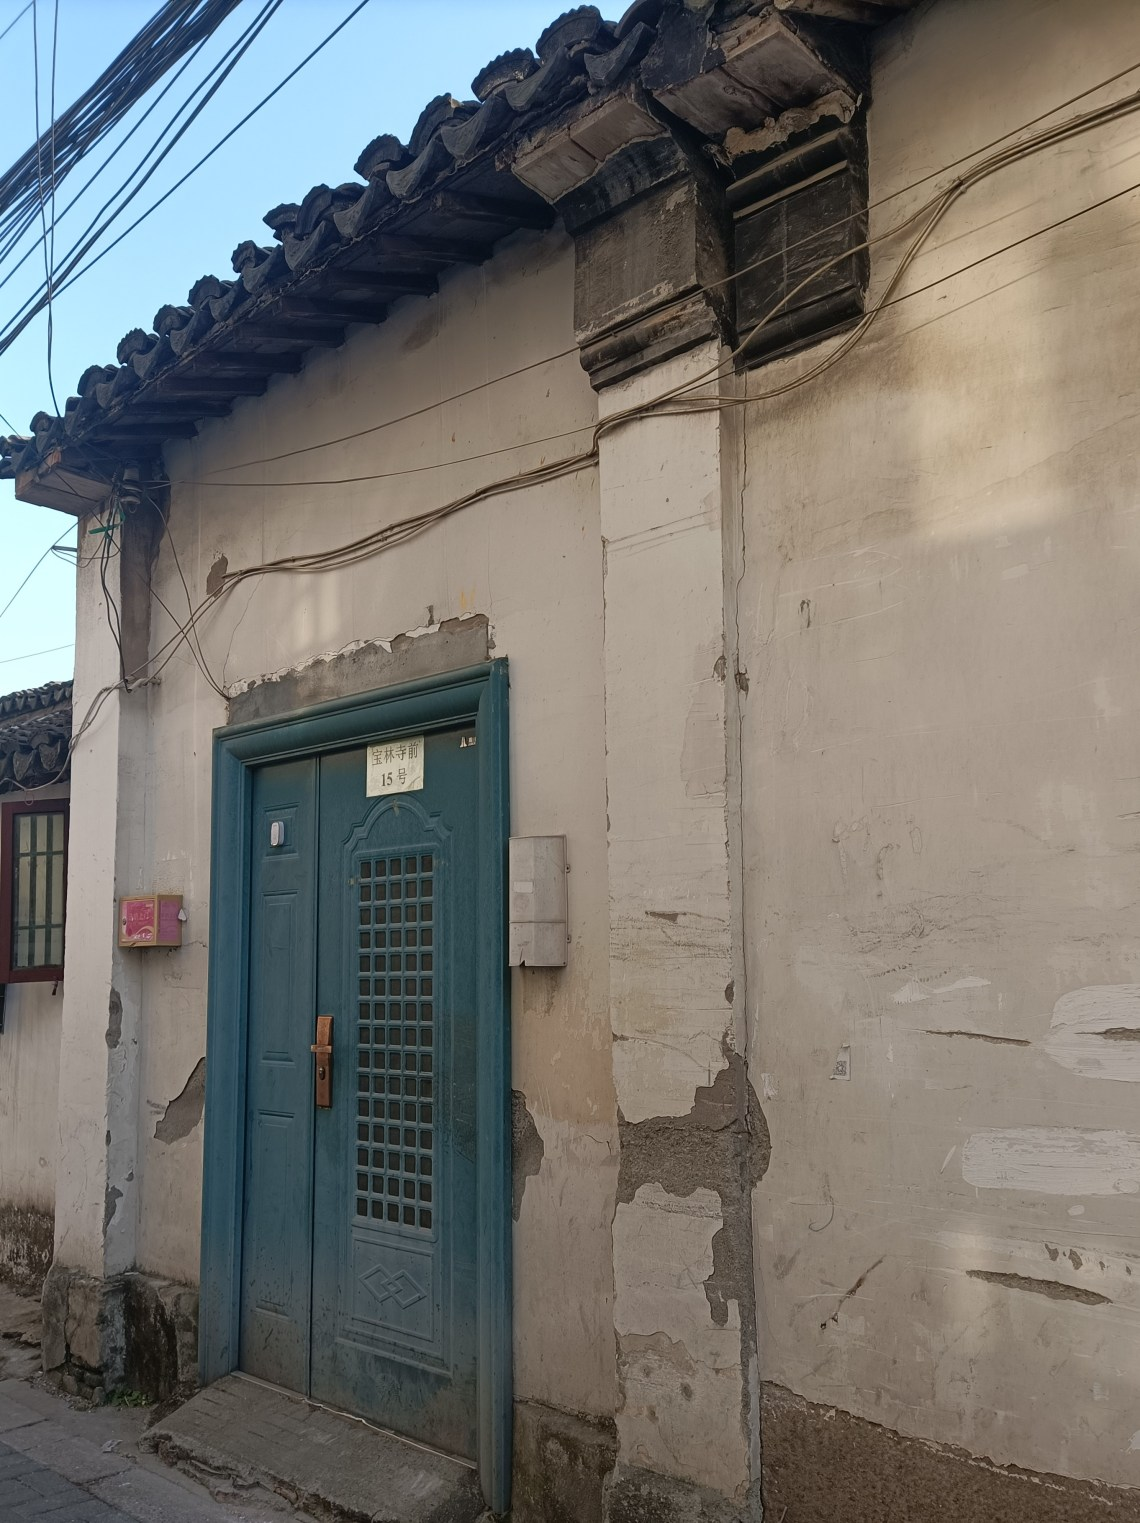 A doorway in the Chinese city of Suzhou which was once the entrance to the women's mosque.